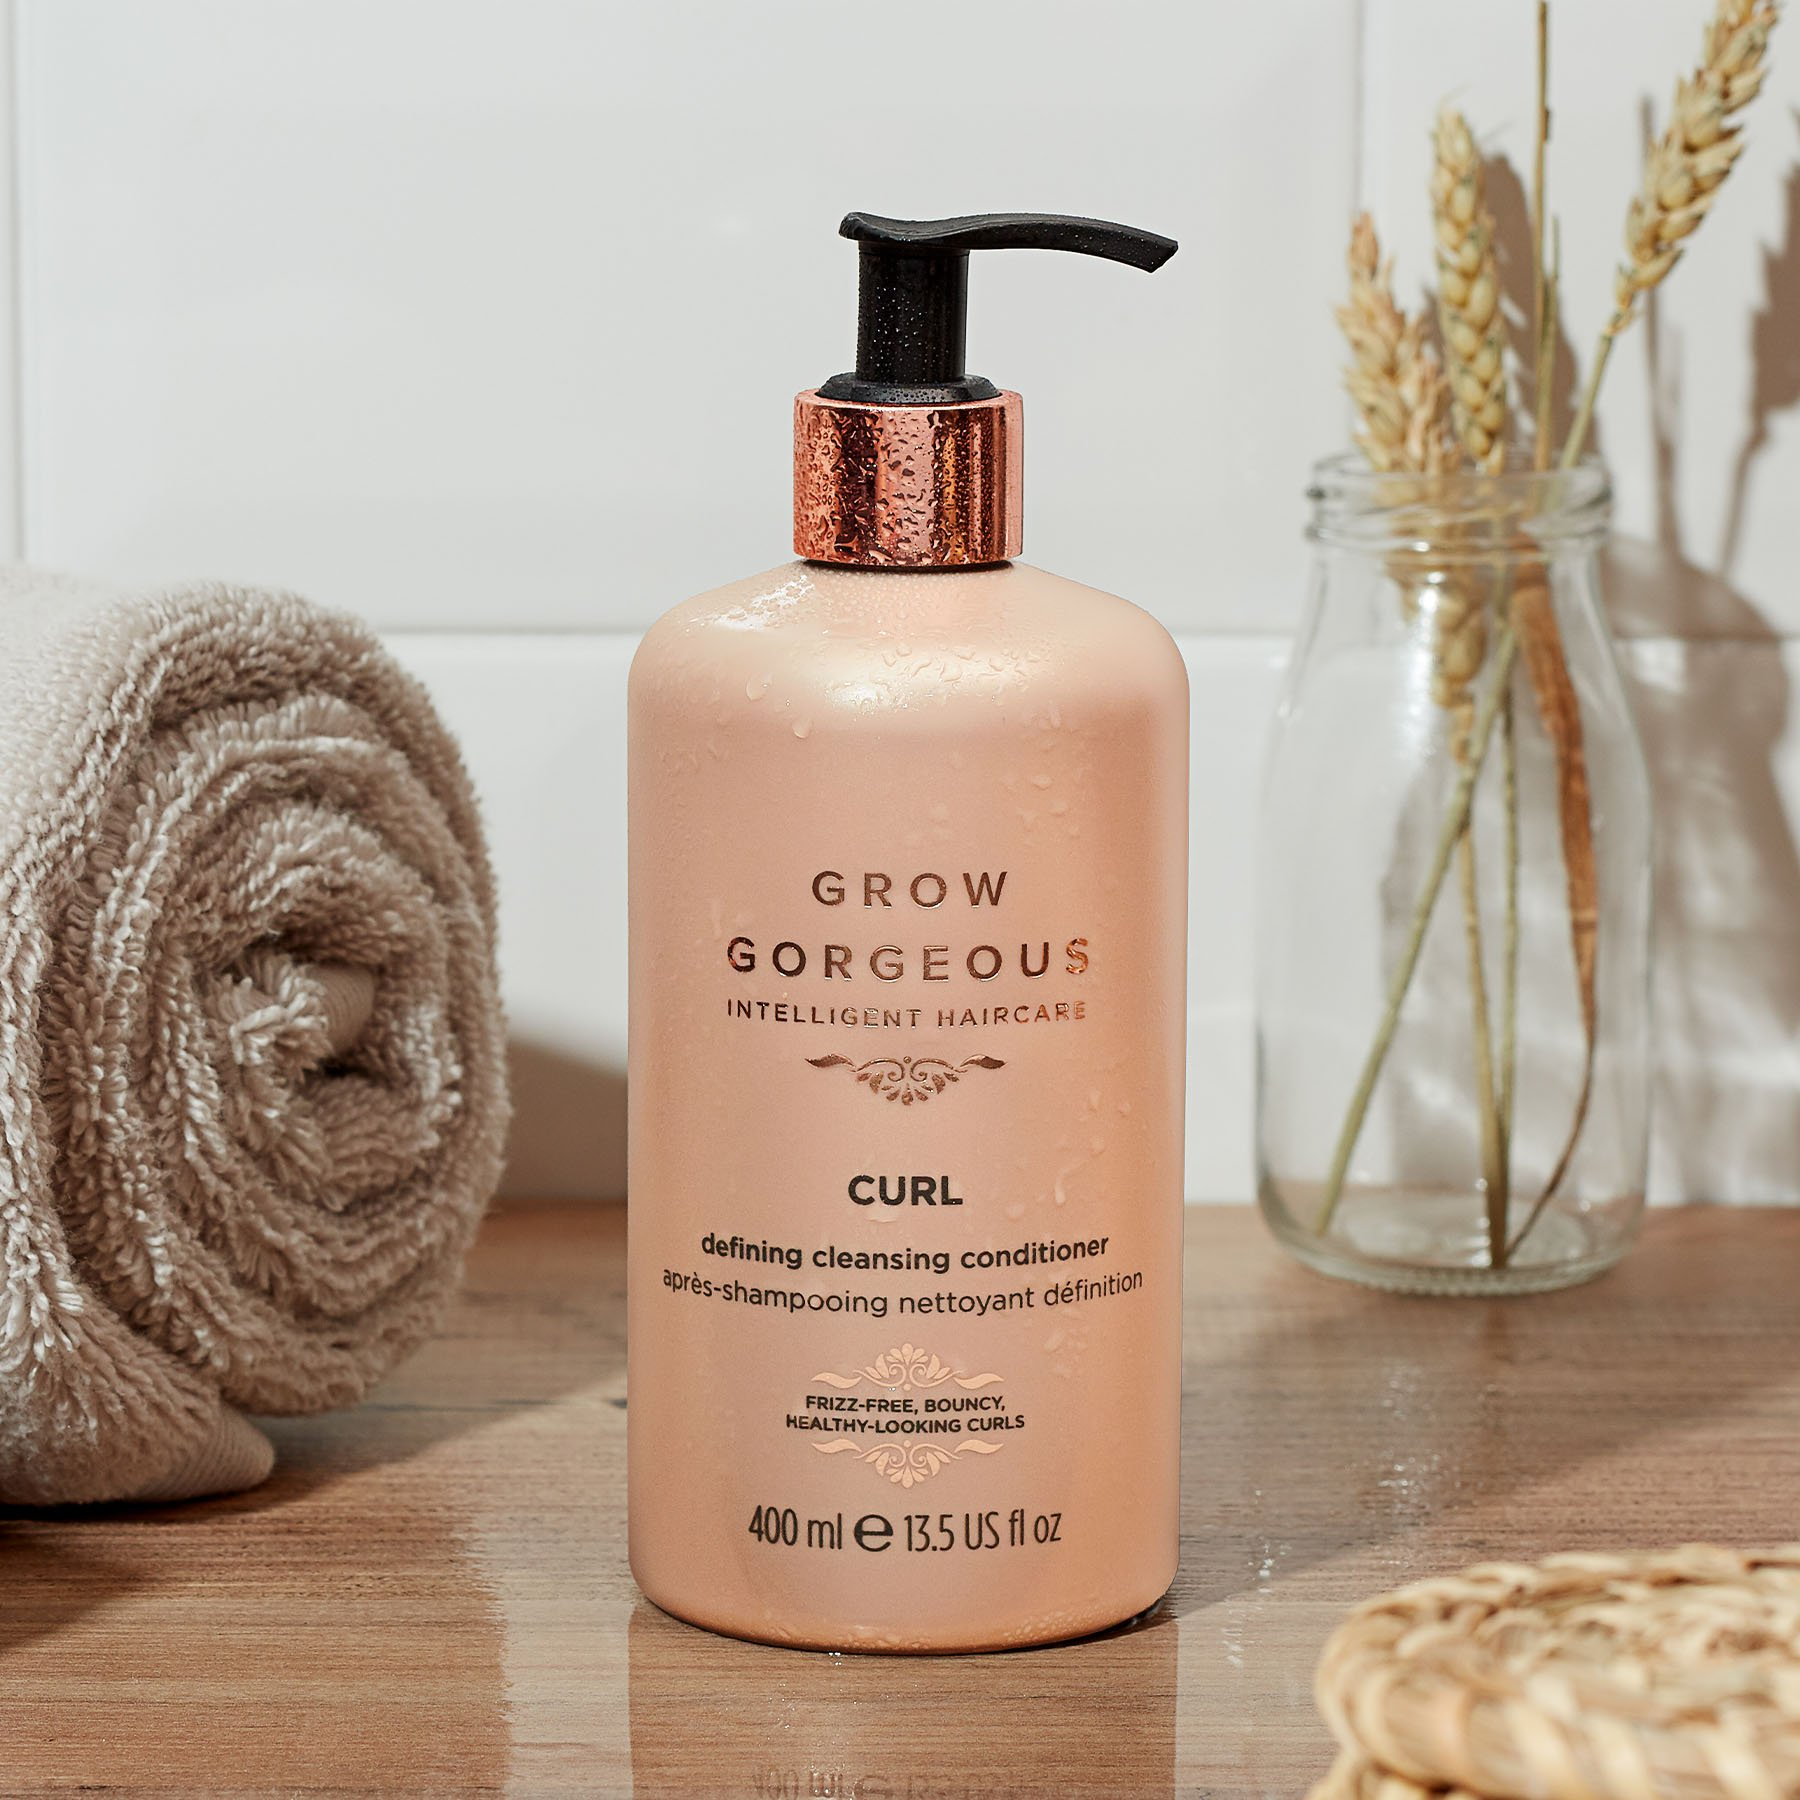 Grow Gorgeous Curl Defining Cleansing Conditioner bottle for co washing curly hair.